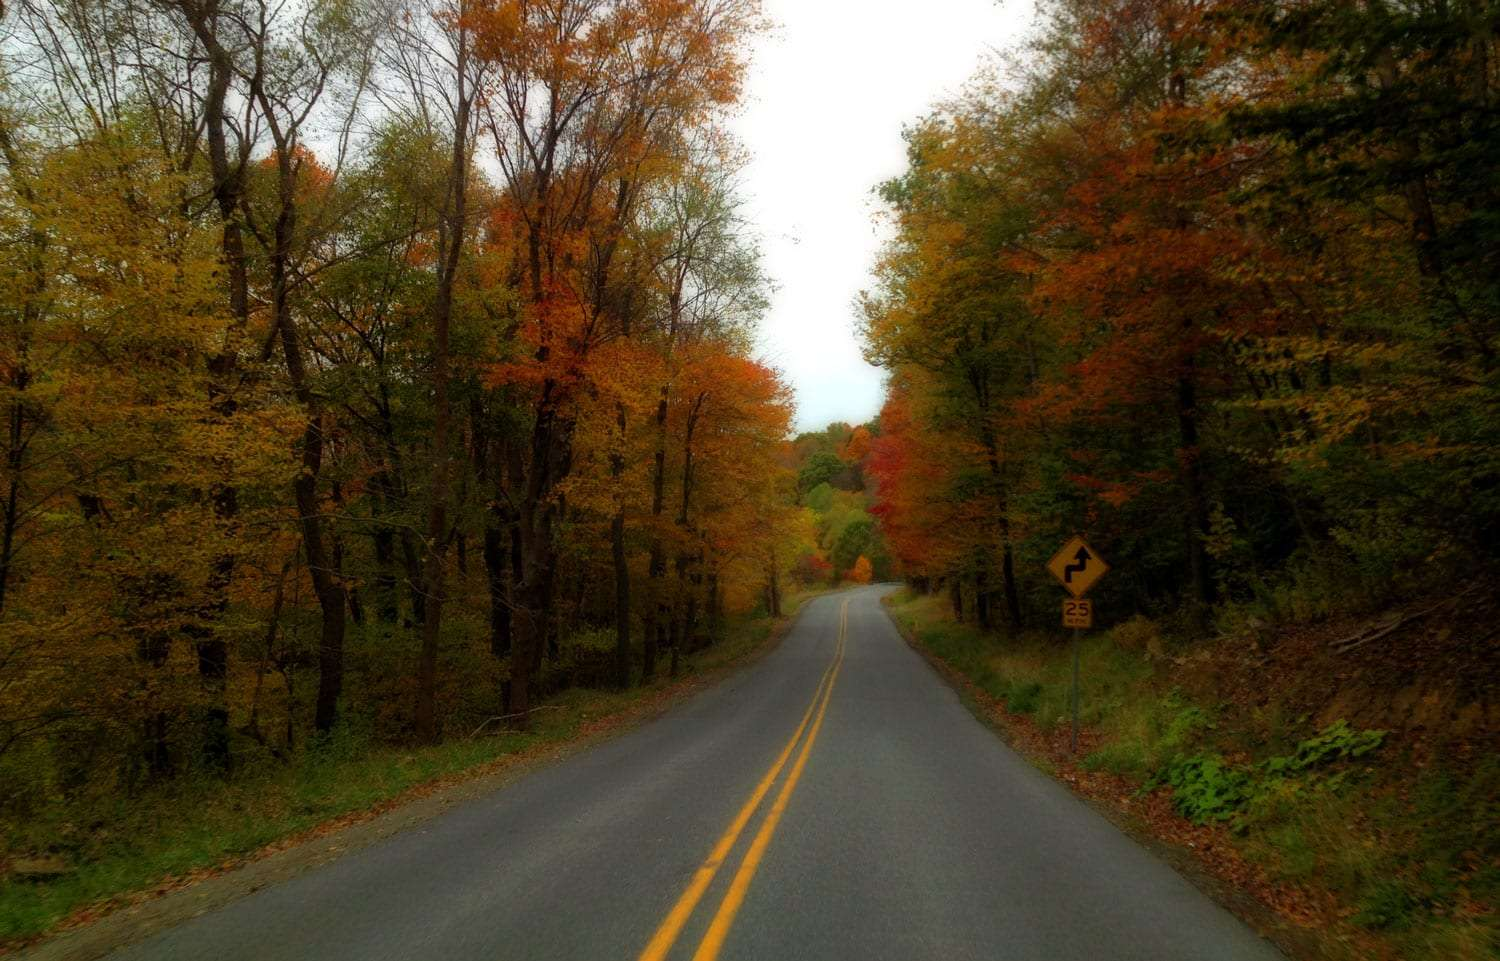 two yellow stripes divide the north and southbound traffic, though rare, of a road through Cambria County, Pennsylvania. Leaves, they are abundant.